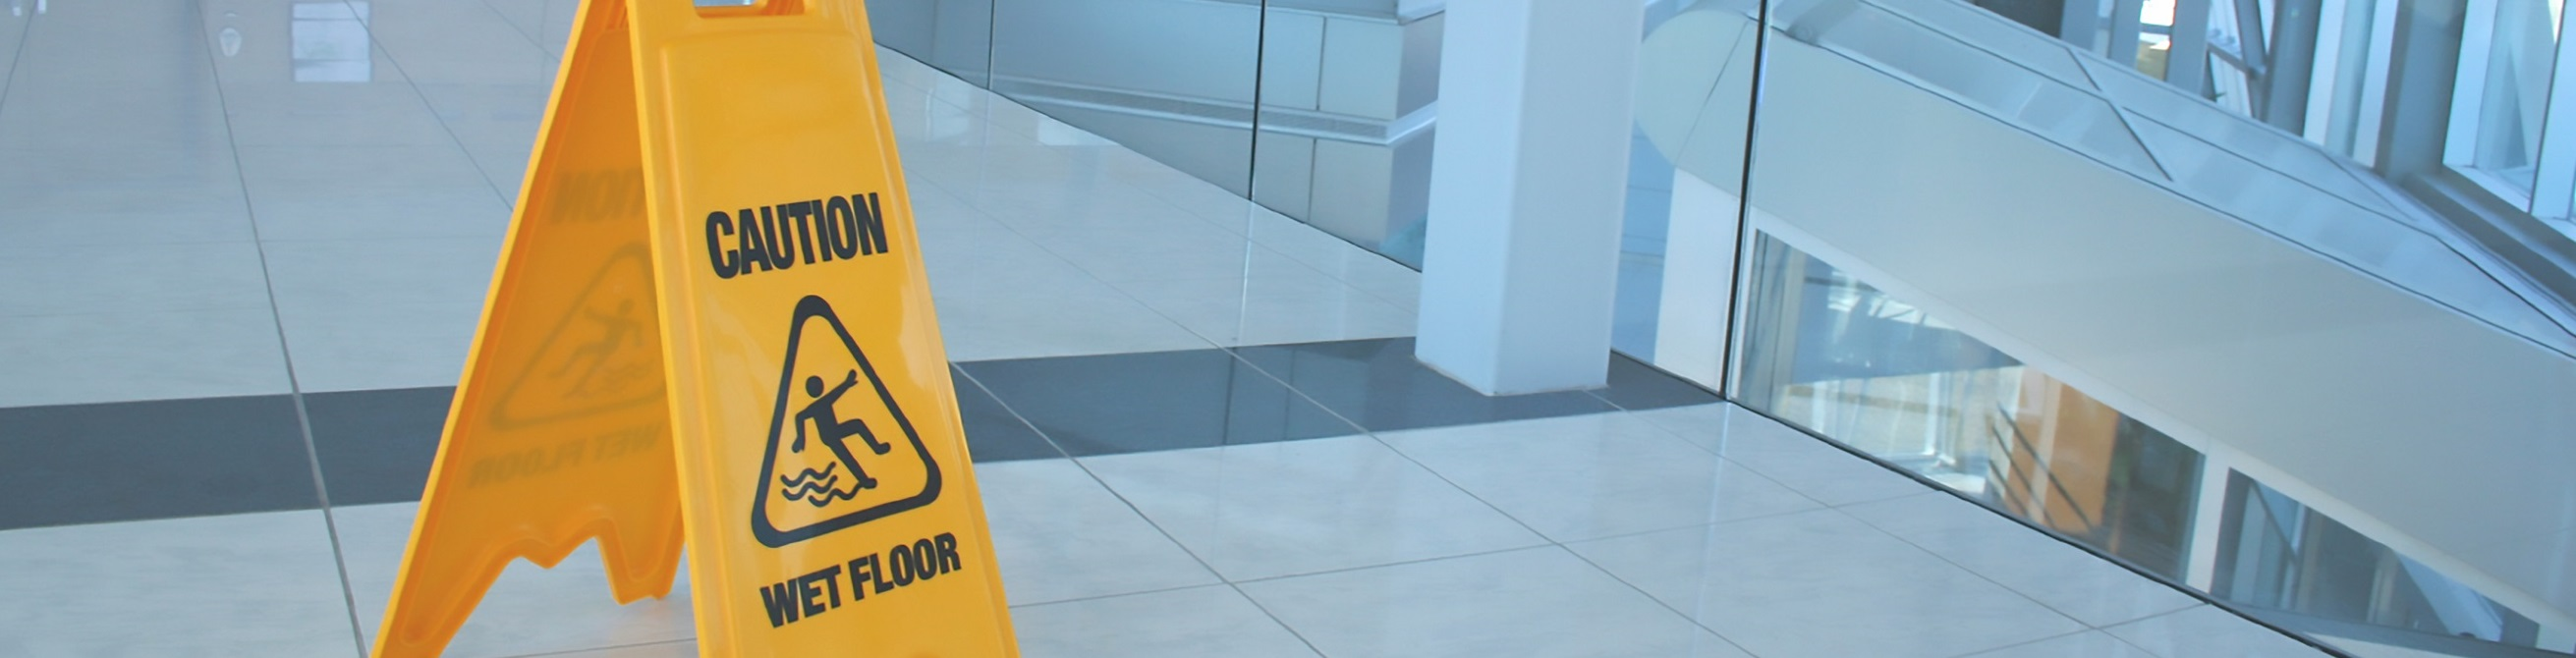 Professional cleaning services in Sevenoaks, Dartford - TS Cleaning Limited